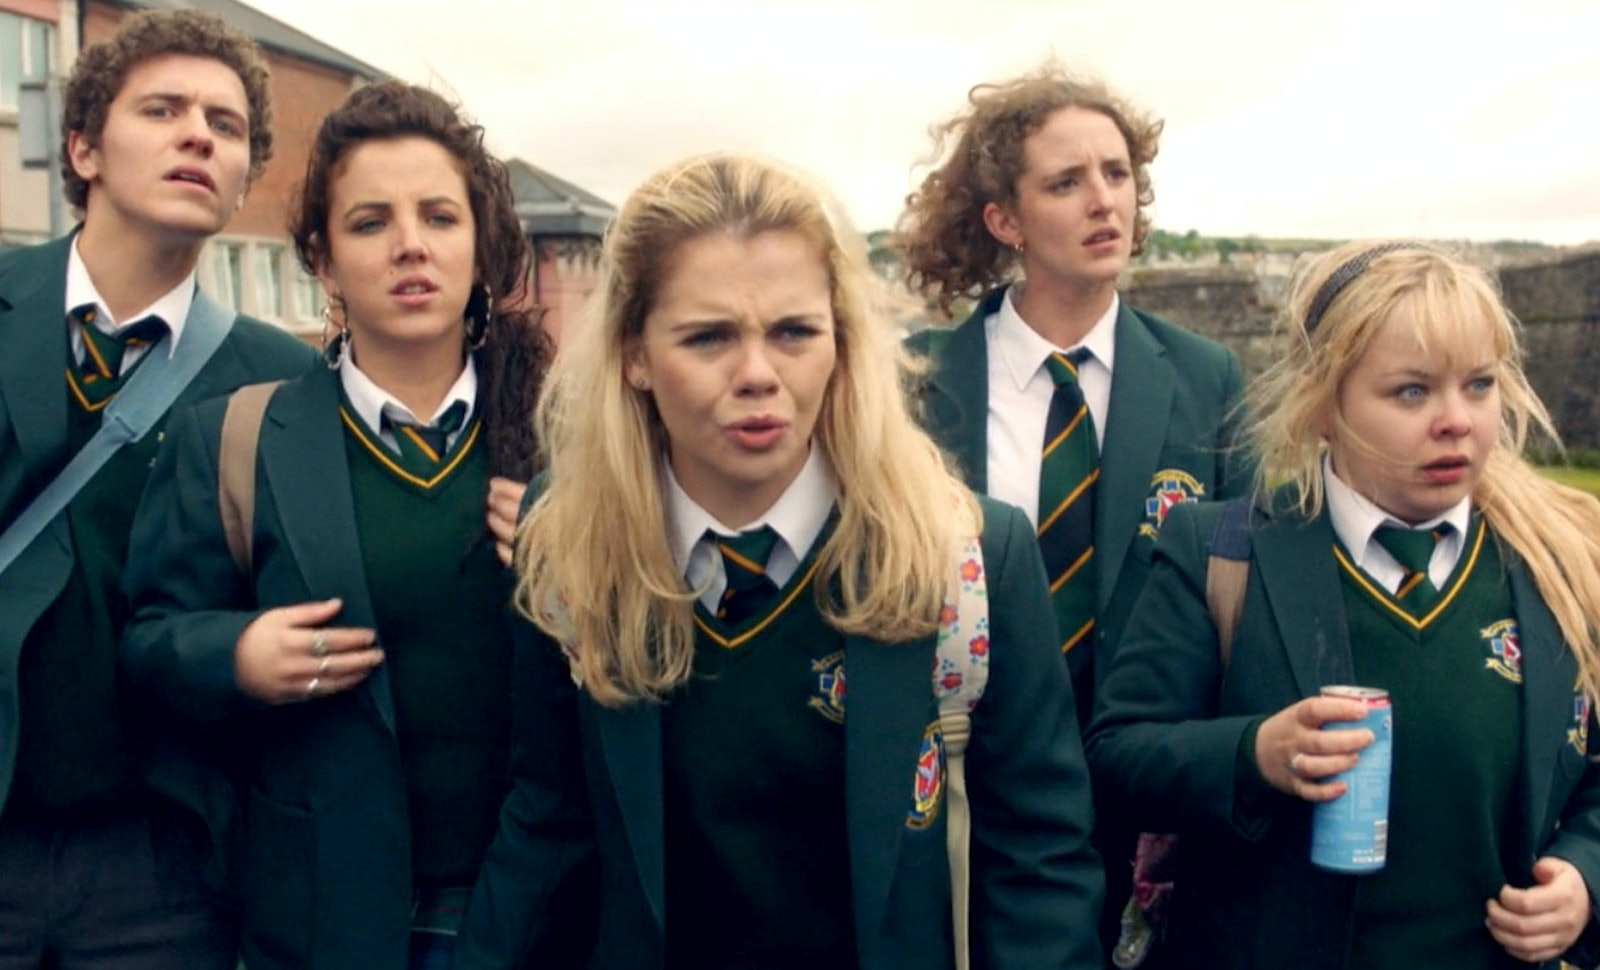 When Will'Derry Girls' Season 3 Be On Netflix? Fans Are Asking ...